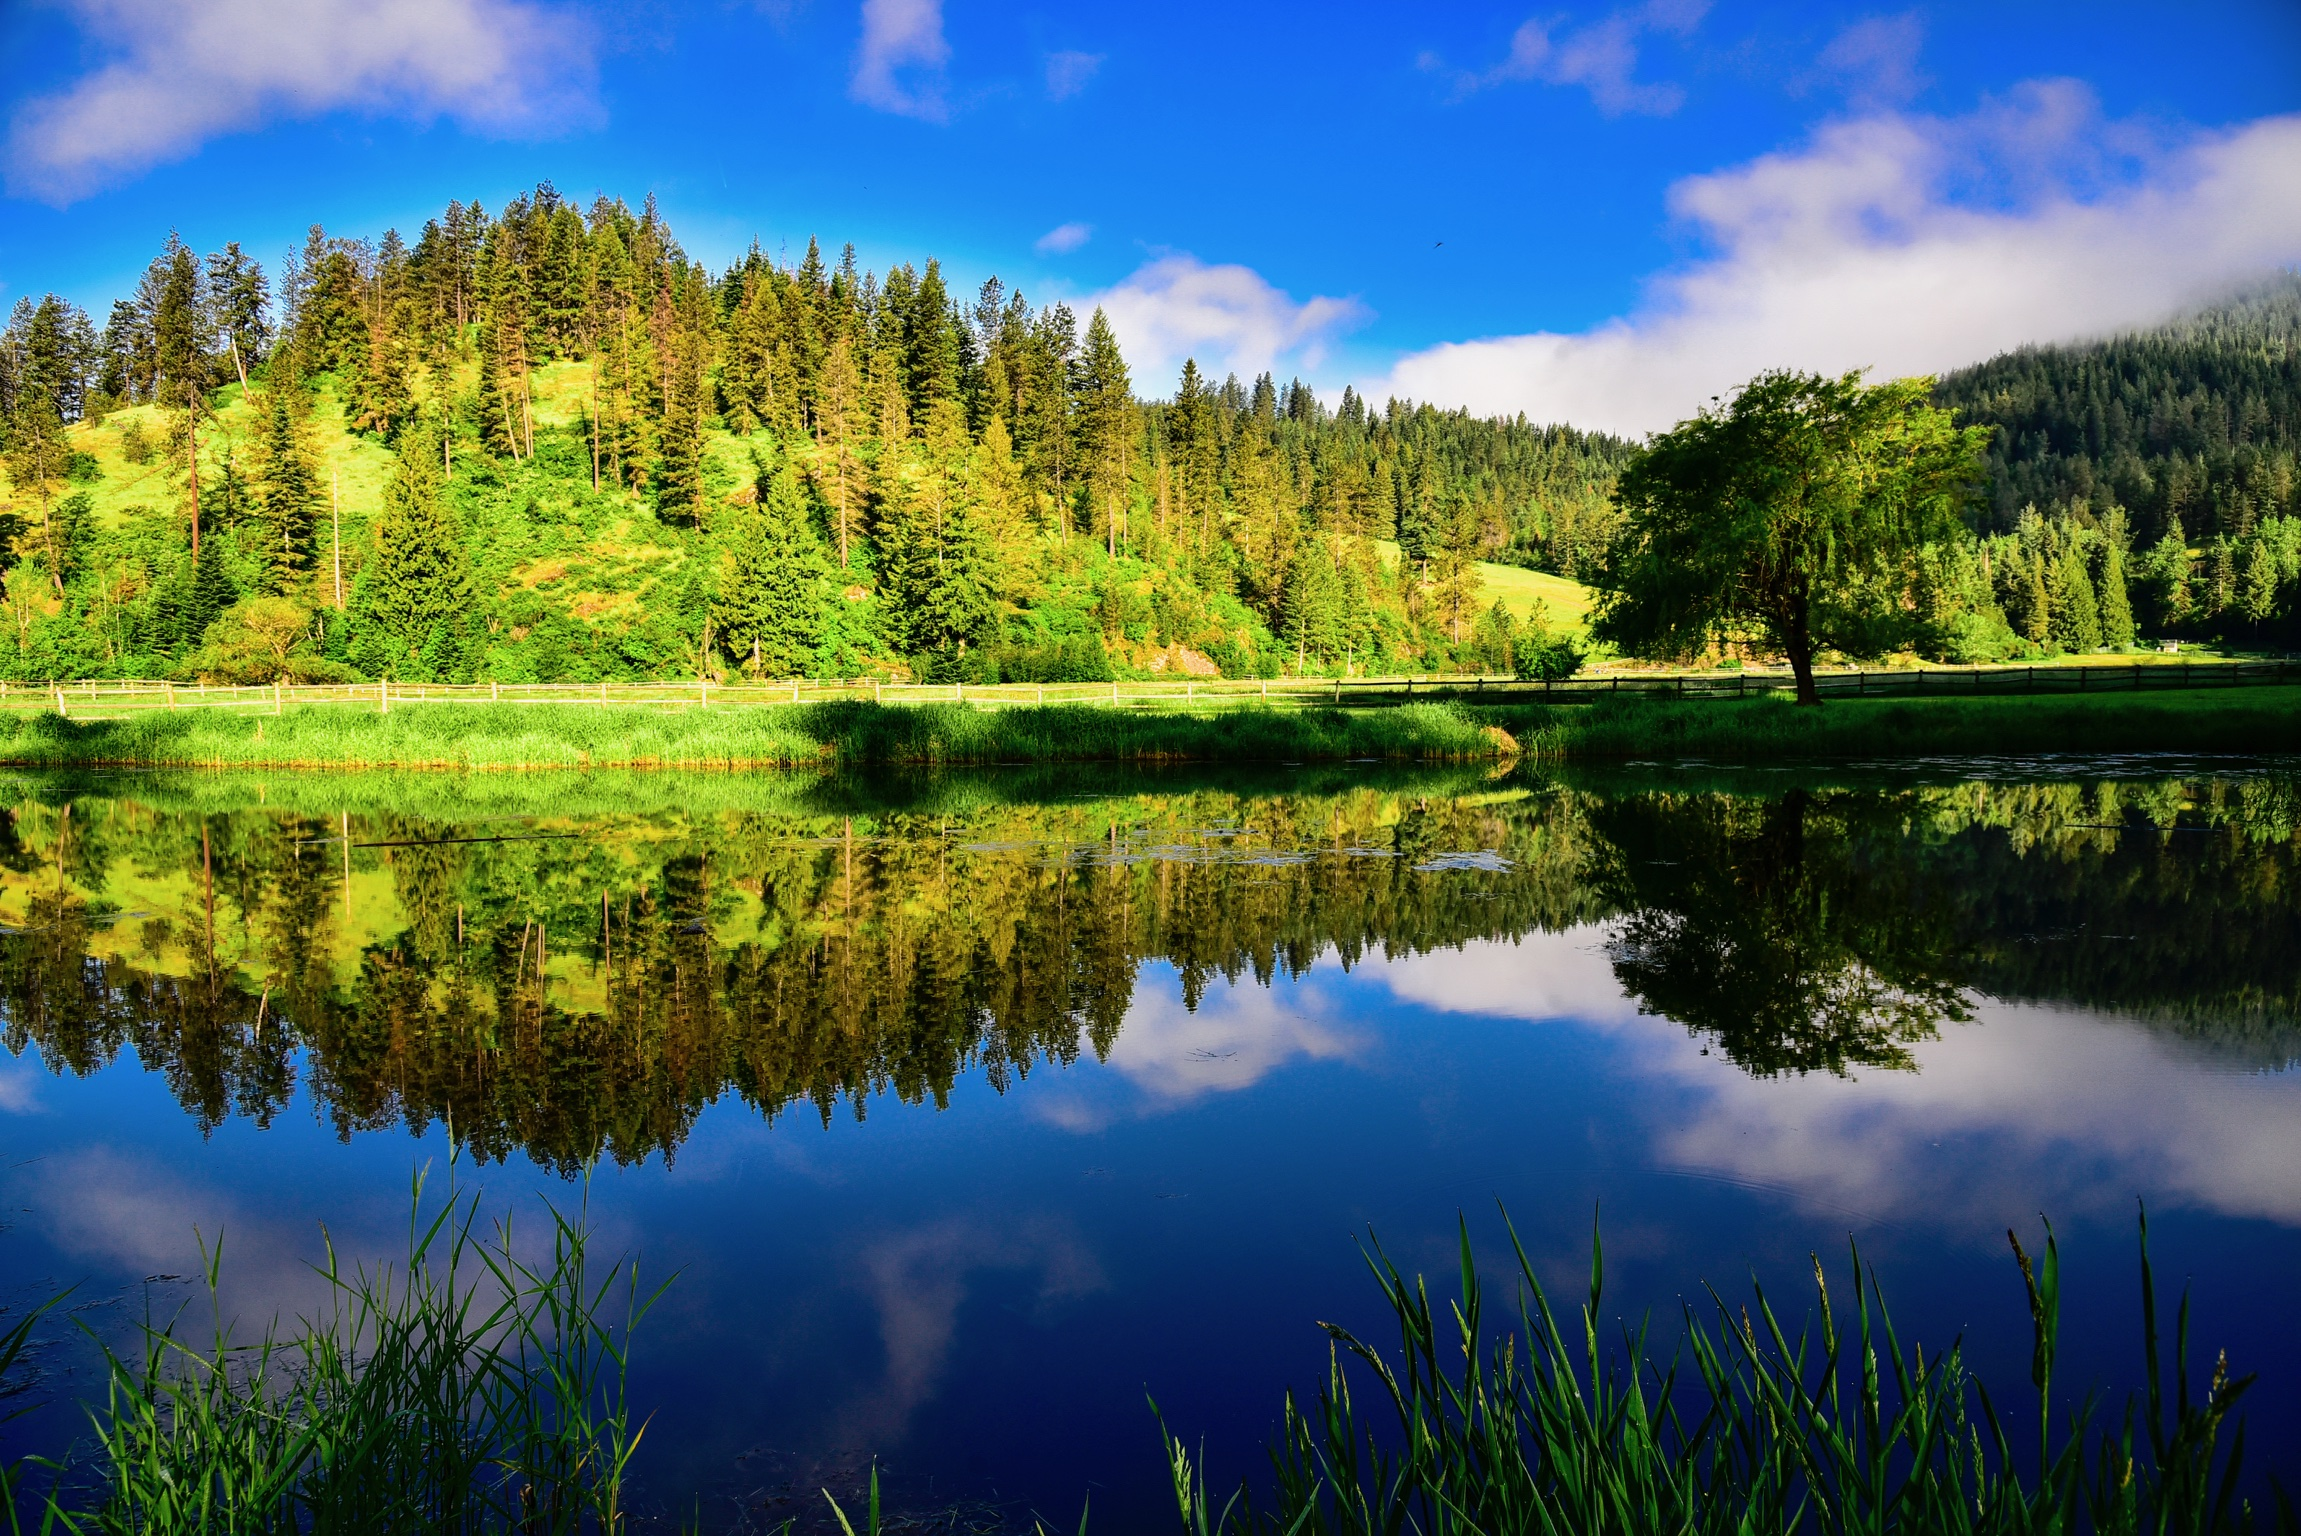 Lake and pine forest.